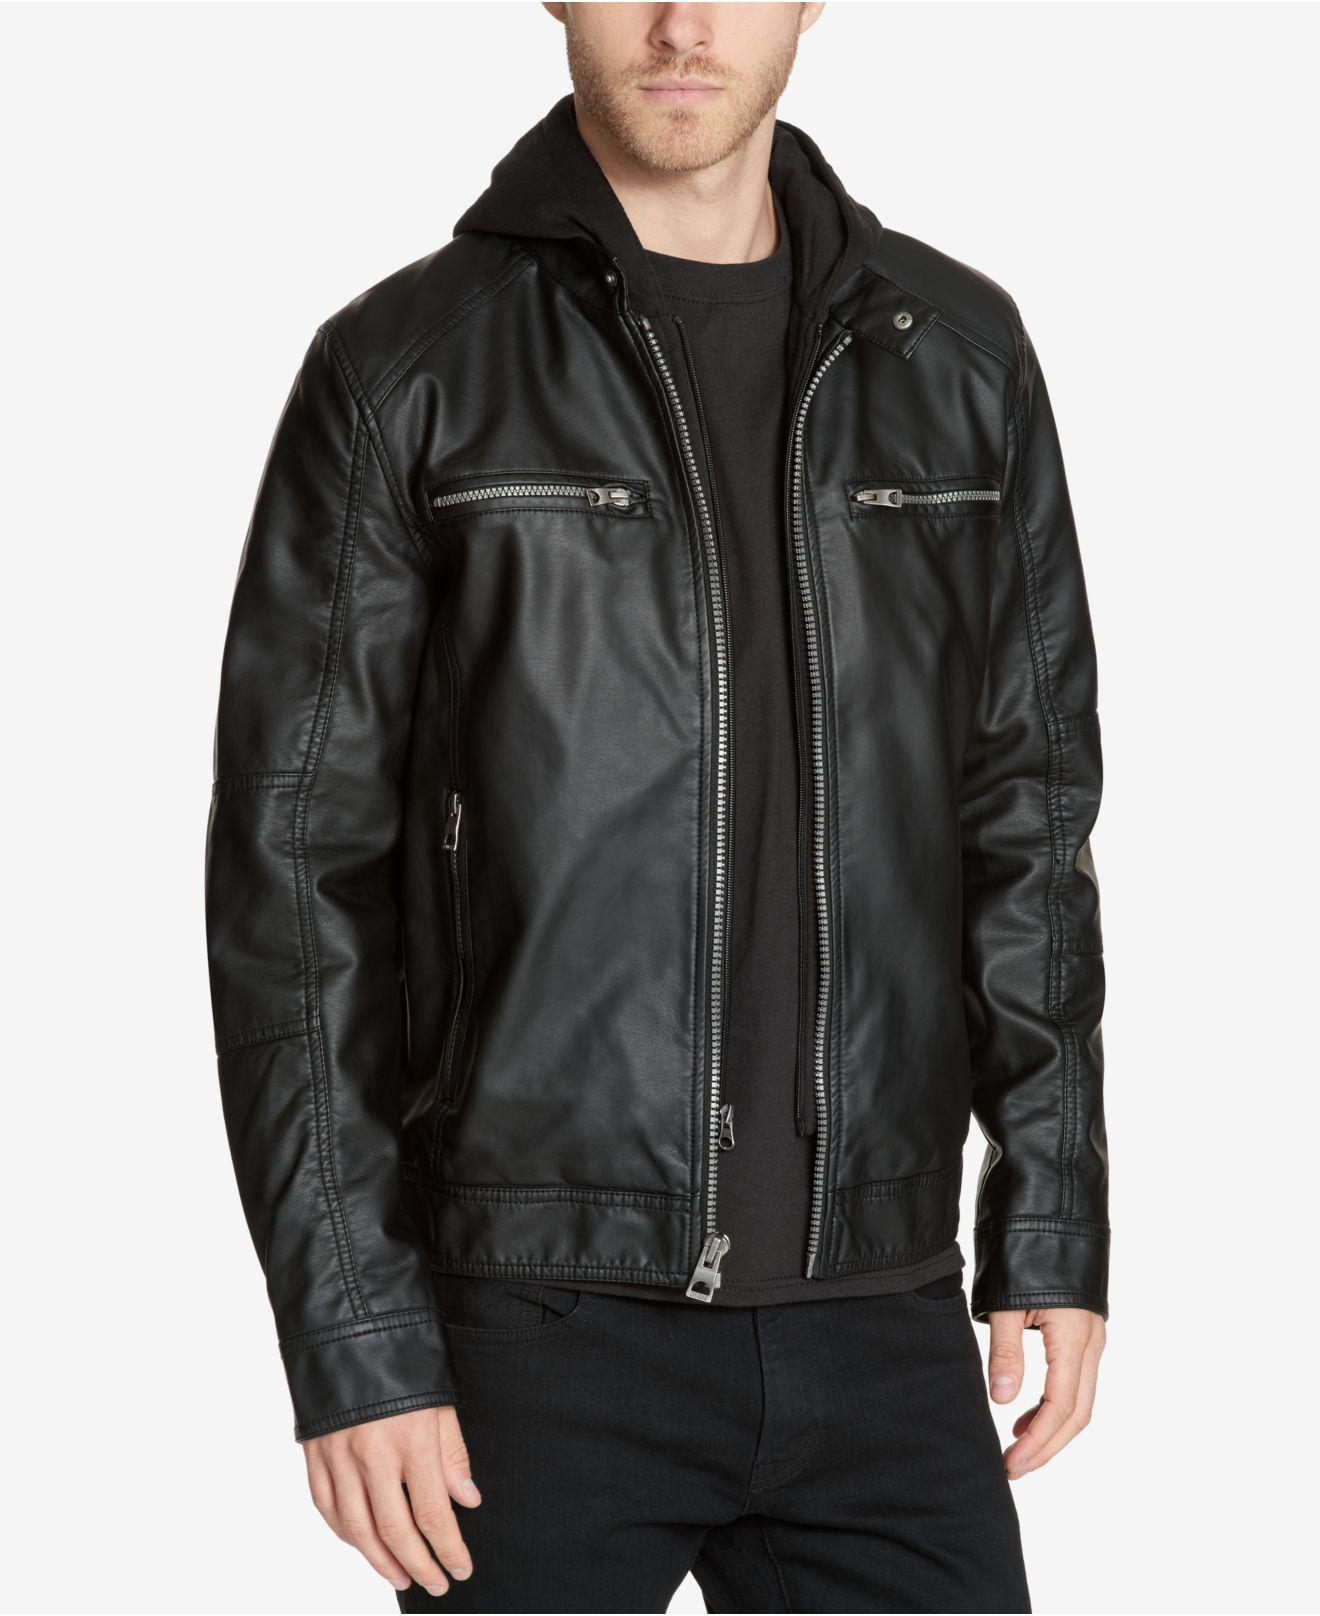 Lyst - Guess Men s Faux-leather Detachable-hood Motorcycle Jacket in Black  for Men 405a232396b7